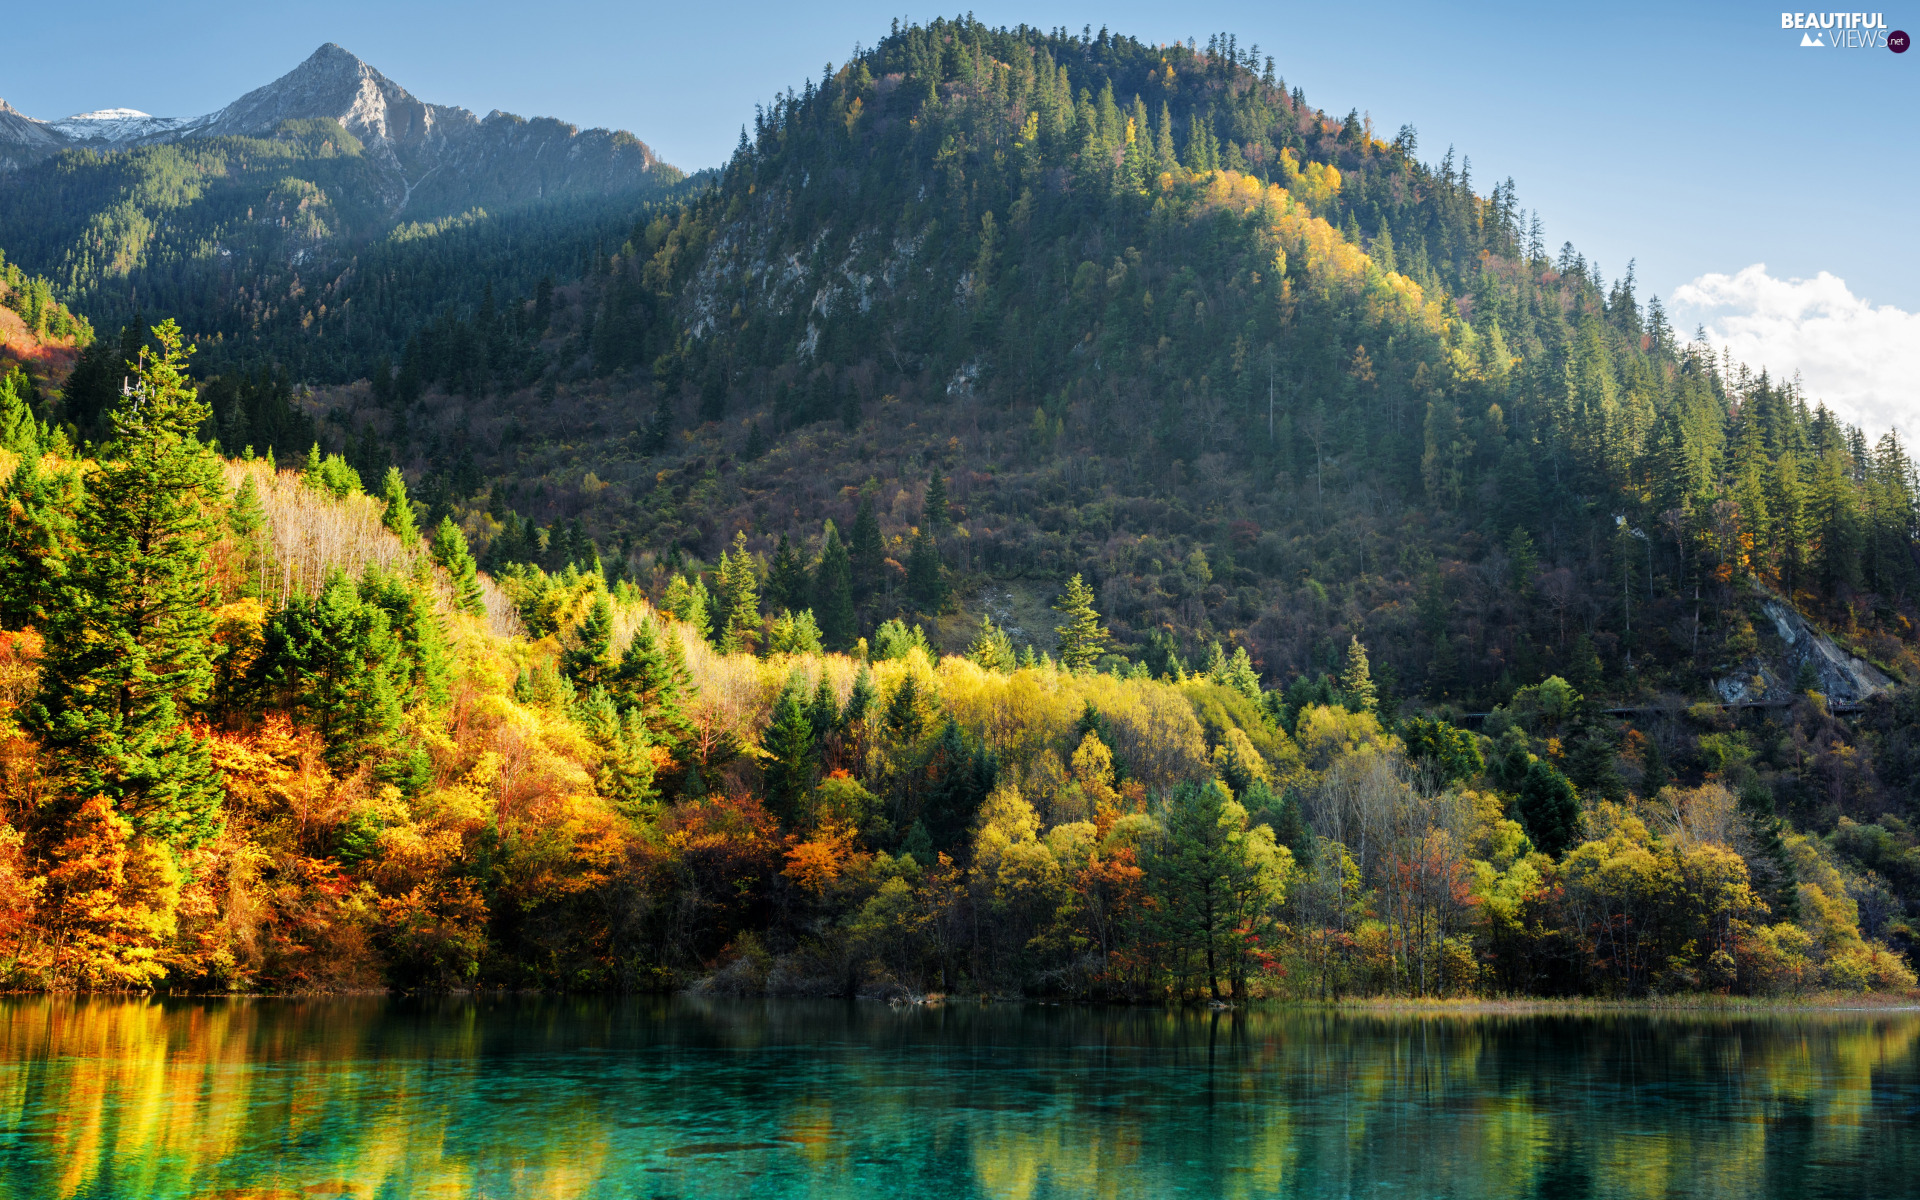 forest, Mountains, China, Wu Hua Hai Lake - Five Flowers, viewes, autumn, Jiuzhaigou National Park, trees